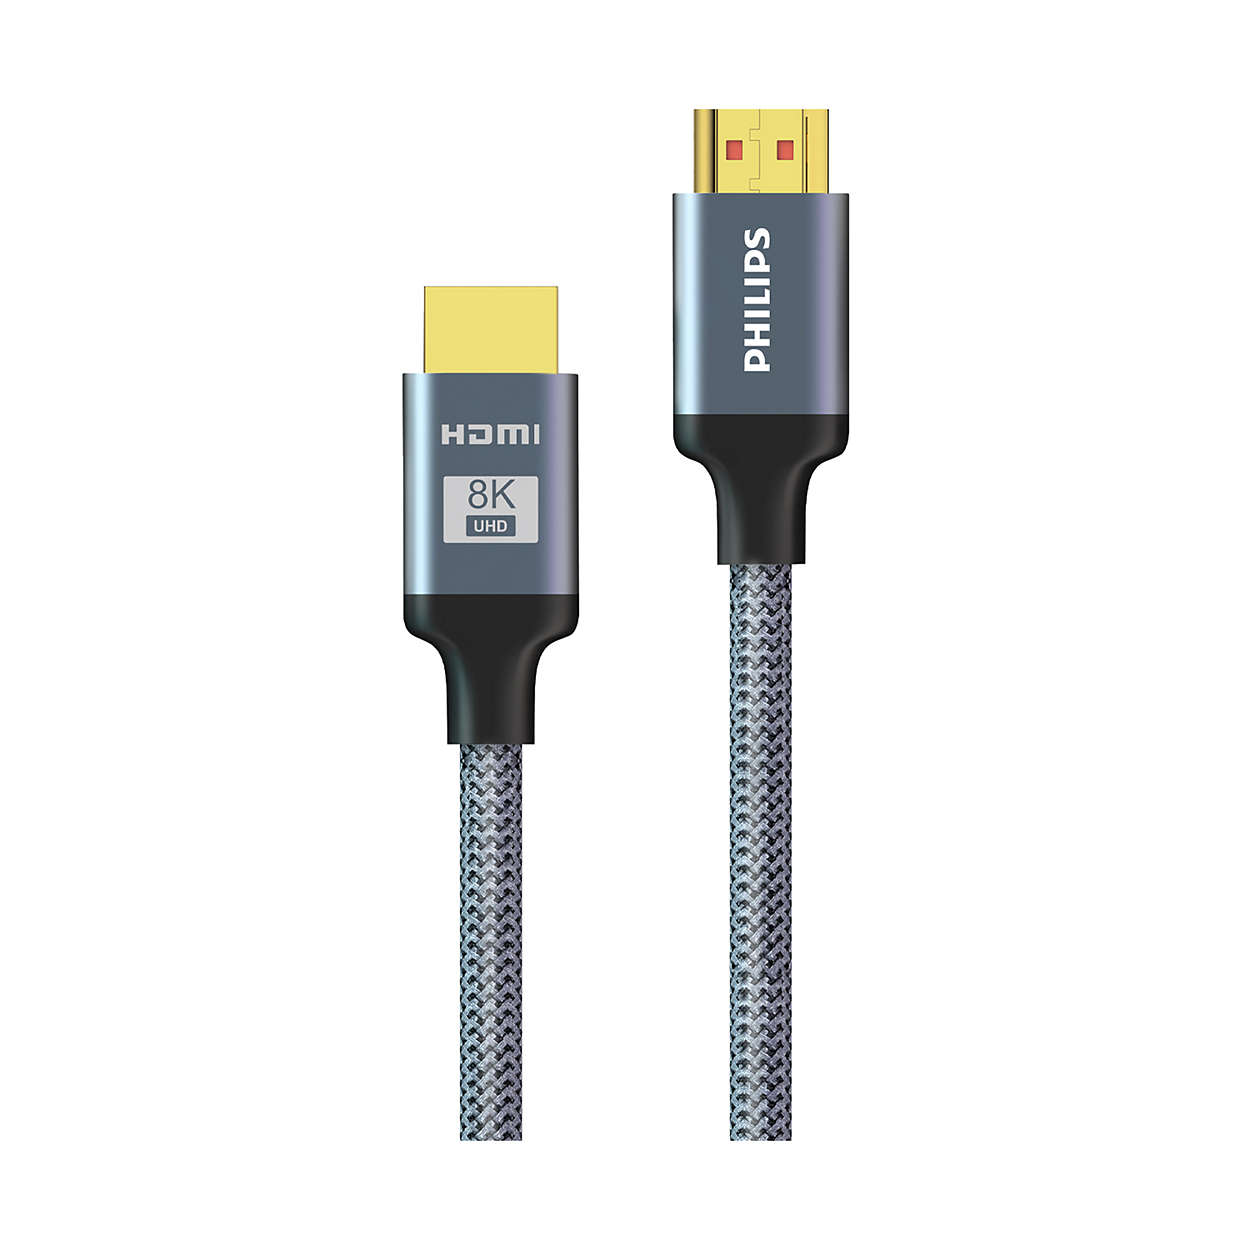 HDMI Premium Certified Cable